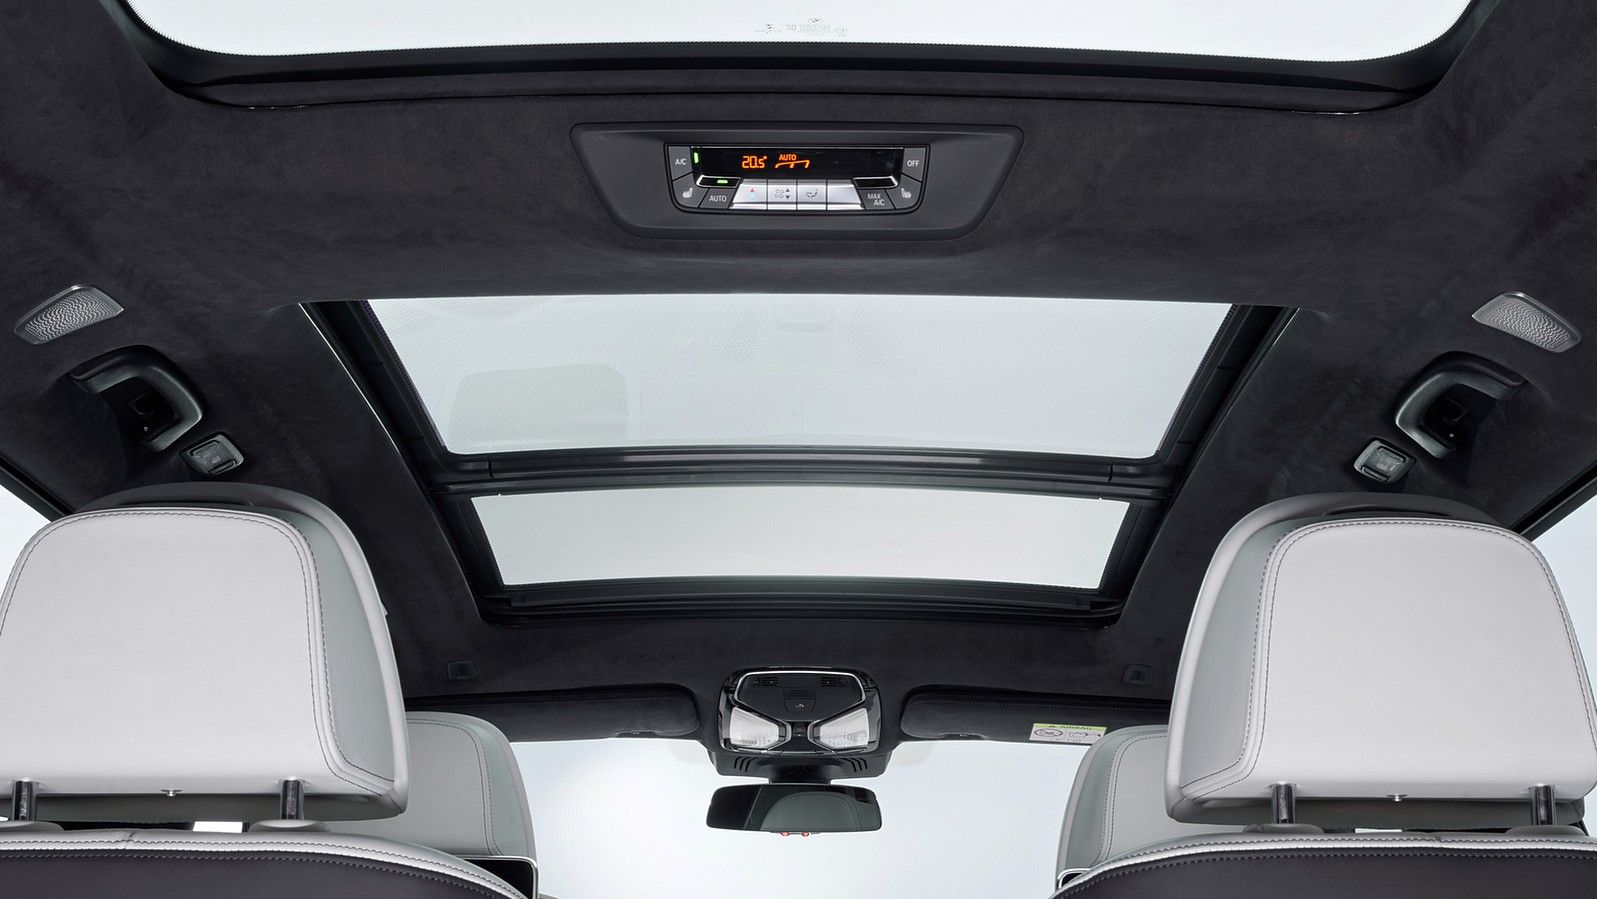 2020 BMW X7 sunroof